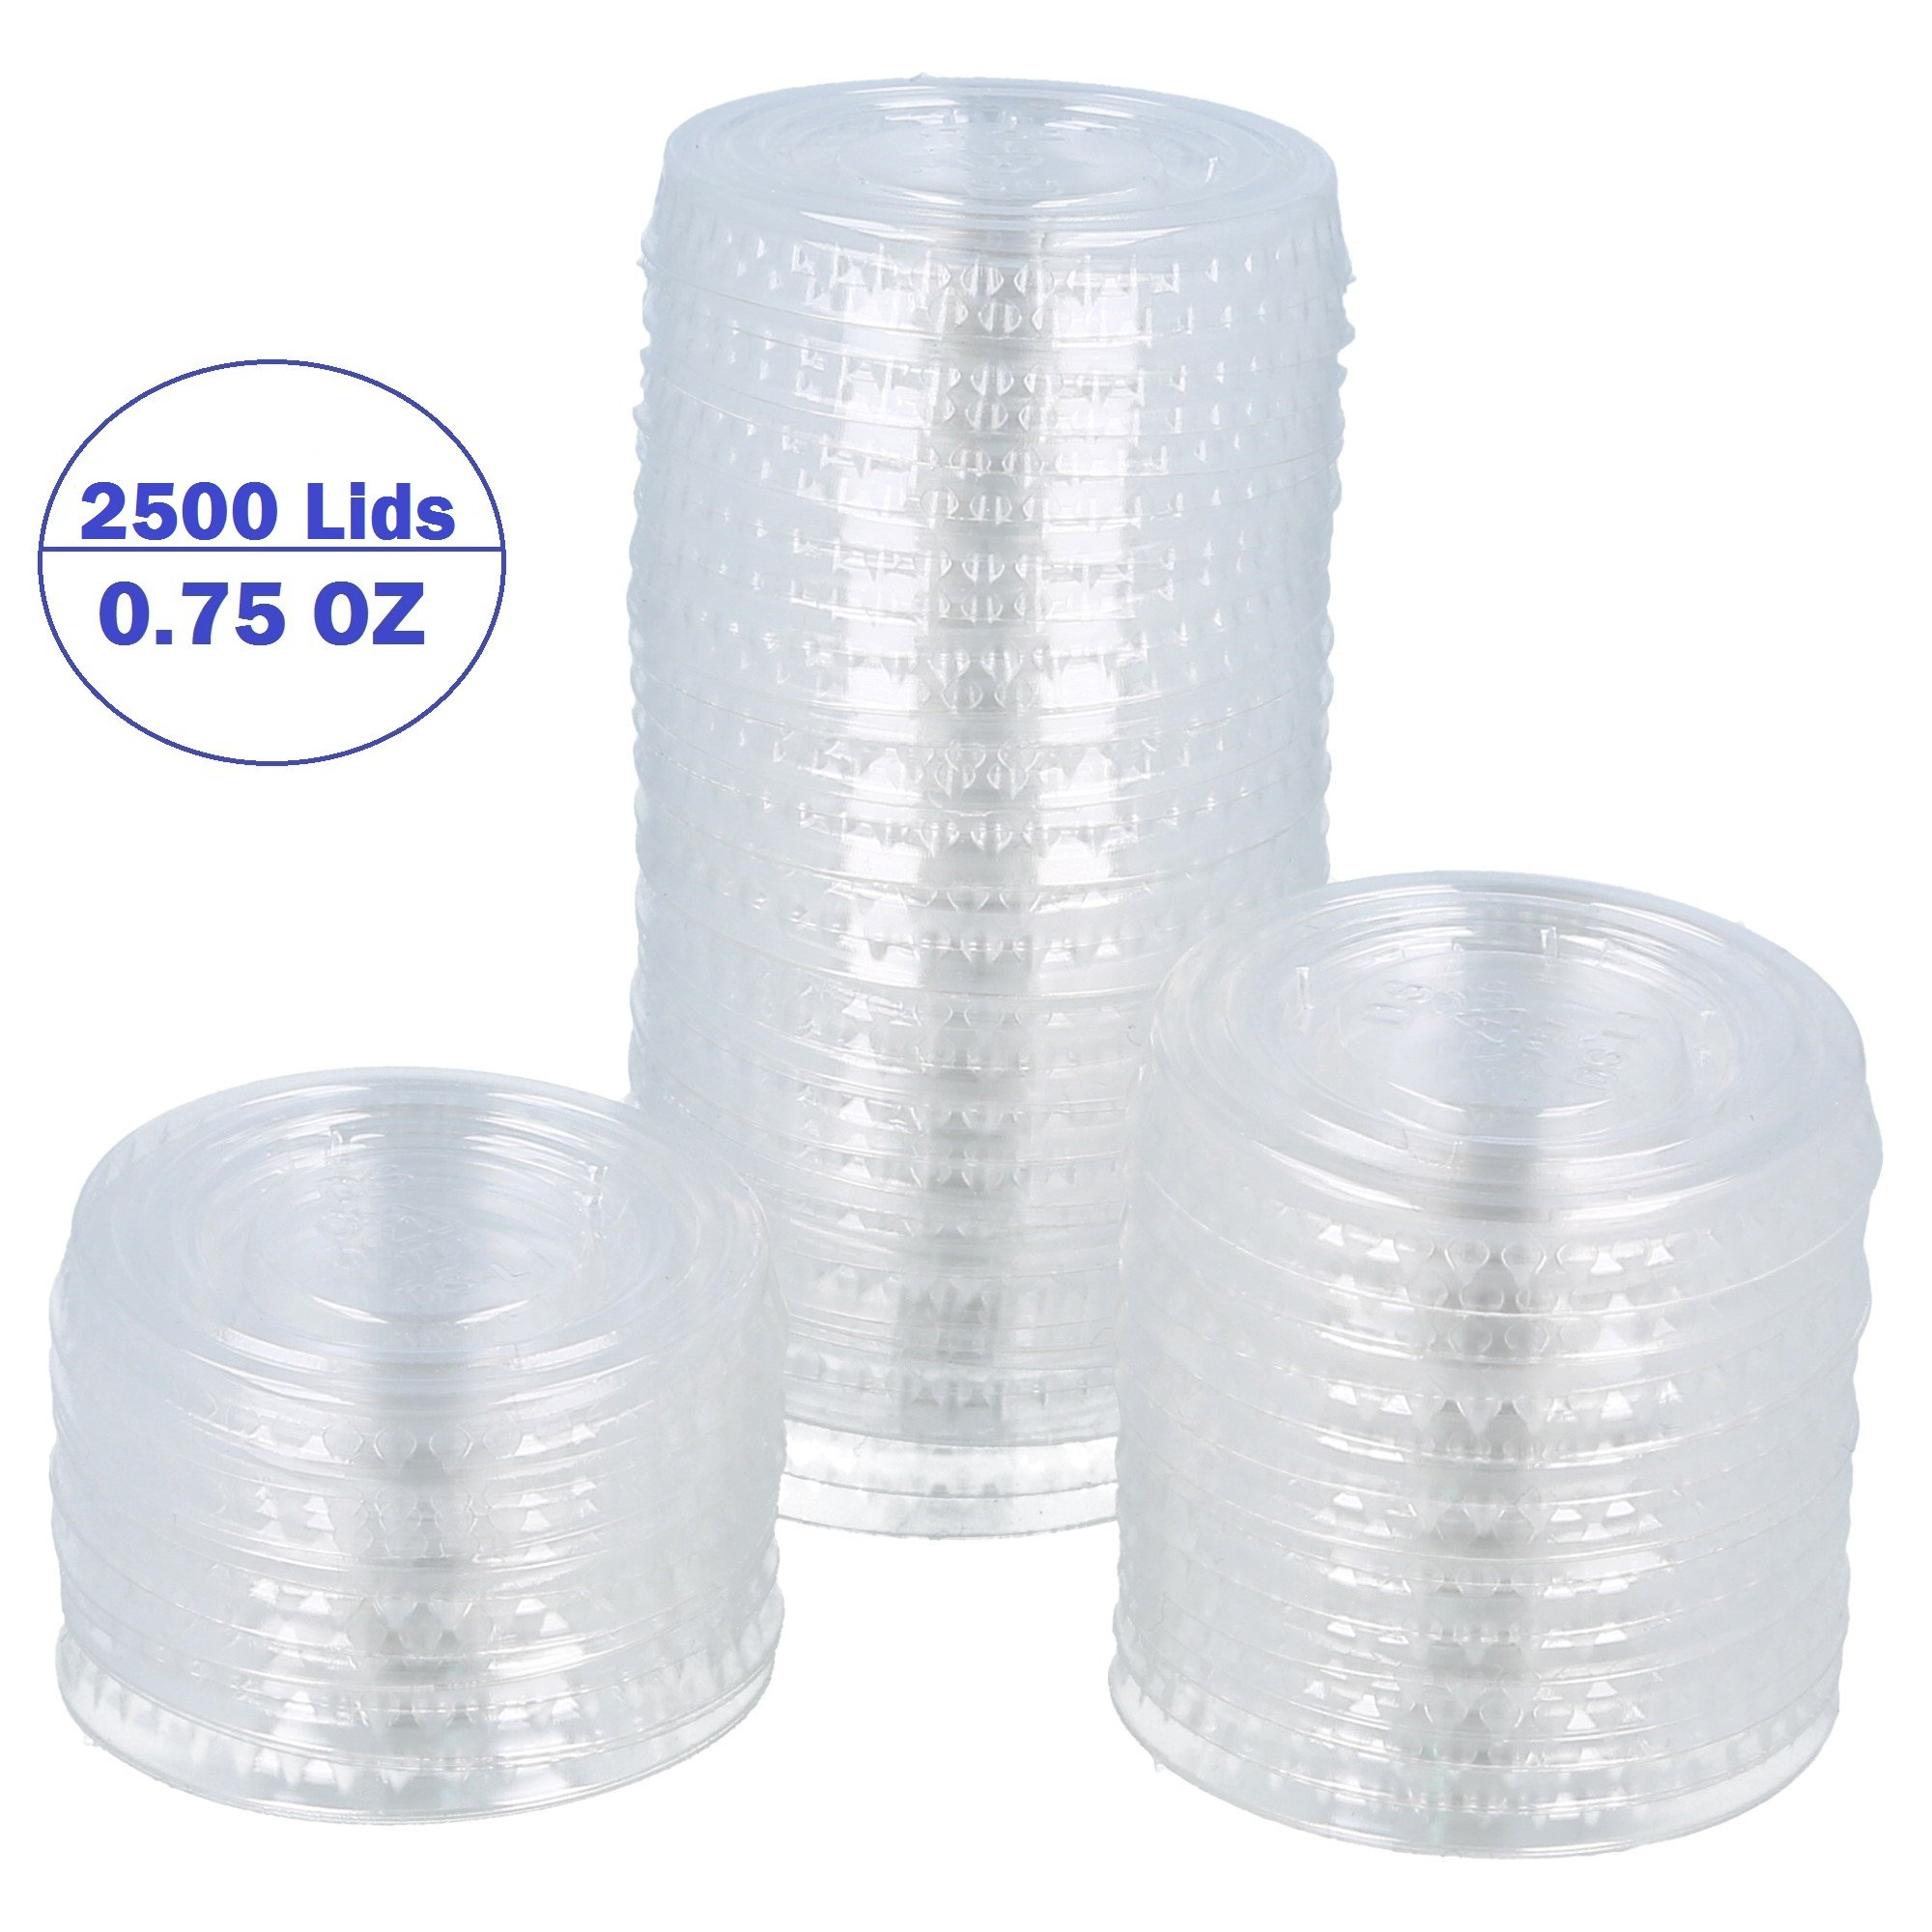 Clear Plastic Durable Disposable Portion Sample Cup Cover Lids Condiments Food Drinks Souffle Sauces Home, Kitchen, Takeout, Dining, Restaurant, Cups Sold Separately (Case of 2500 Lids, 0.75 oz)